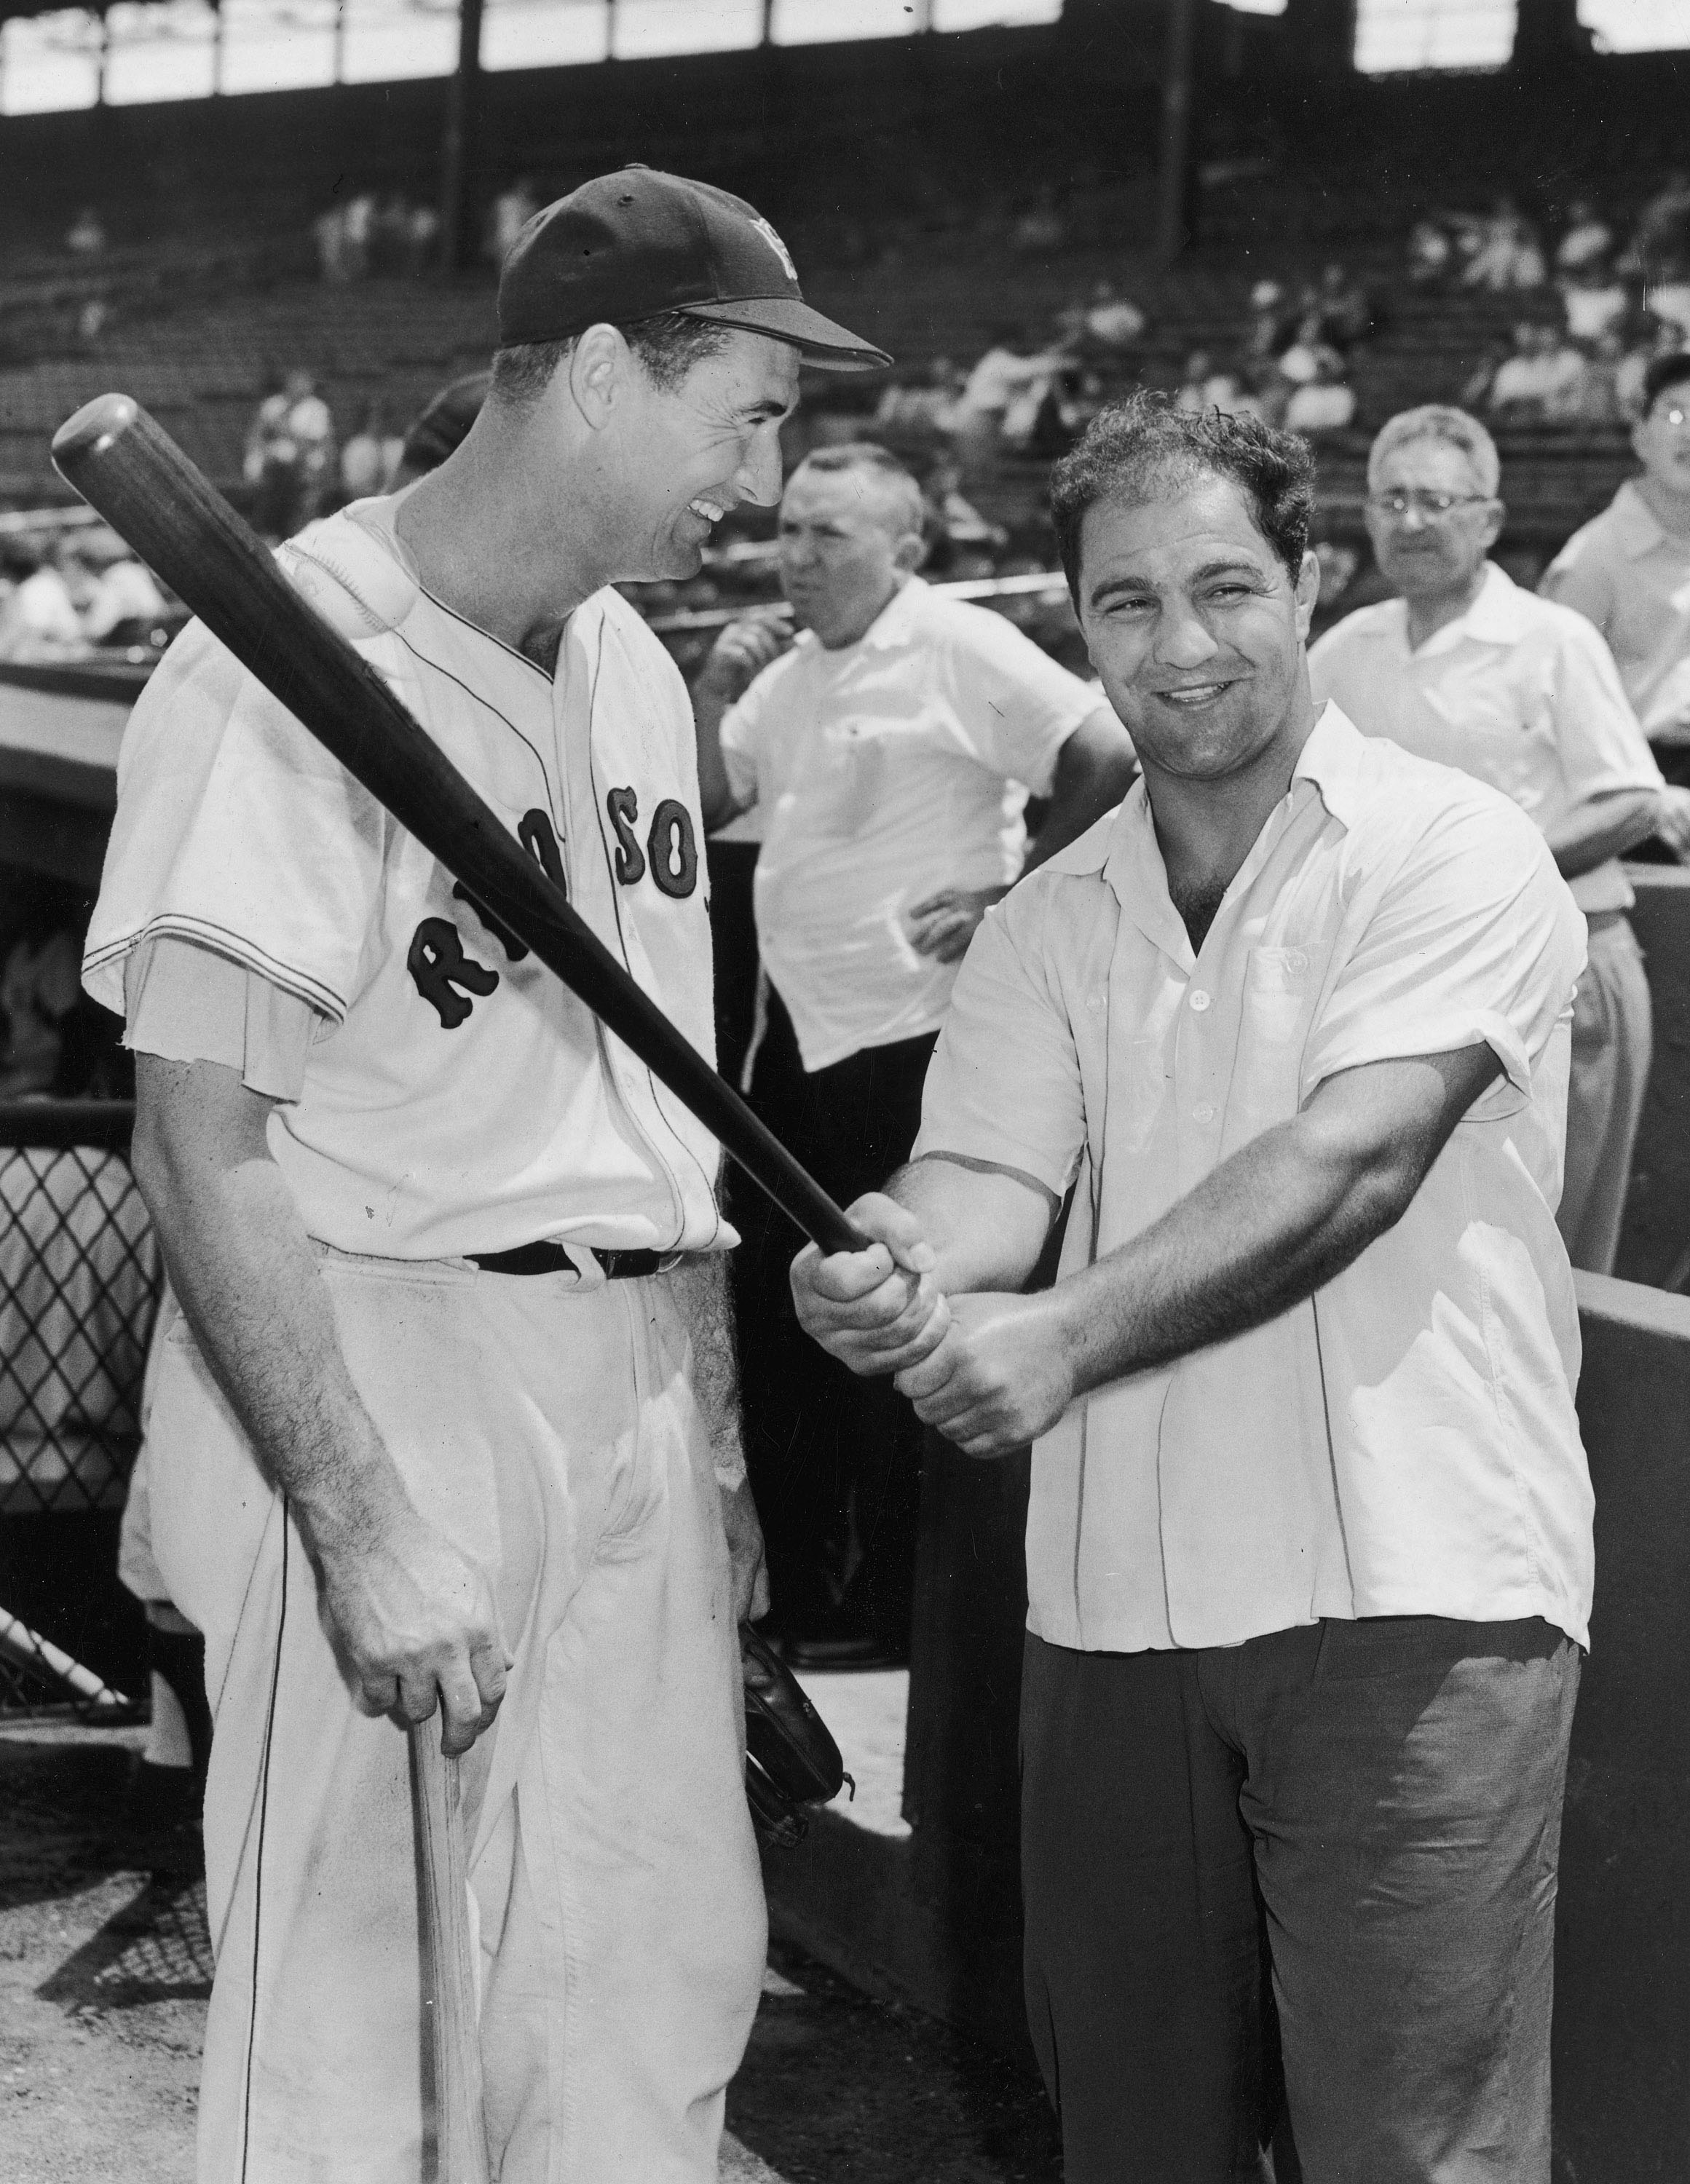 BOSTON - CIRCA 1955:  (UNDATED FILE PHOTO) Baseball legend Ted Williams (1918 - 2002) of the Boston Red Sox (L) laughs as American boxing great Rocky Marciano (1923 - 1969) swings a bat circa 1955. The 83-year-old Williams, who was the last major league p